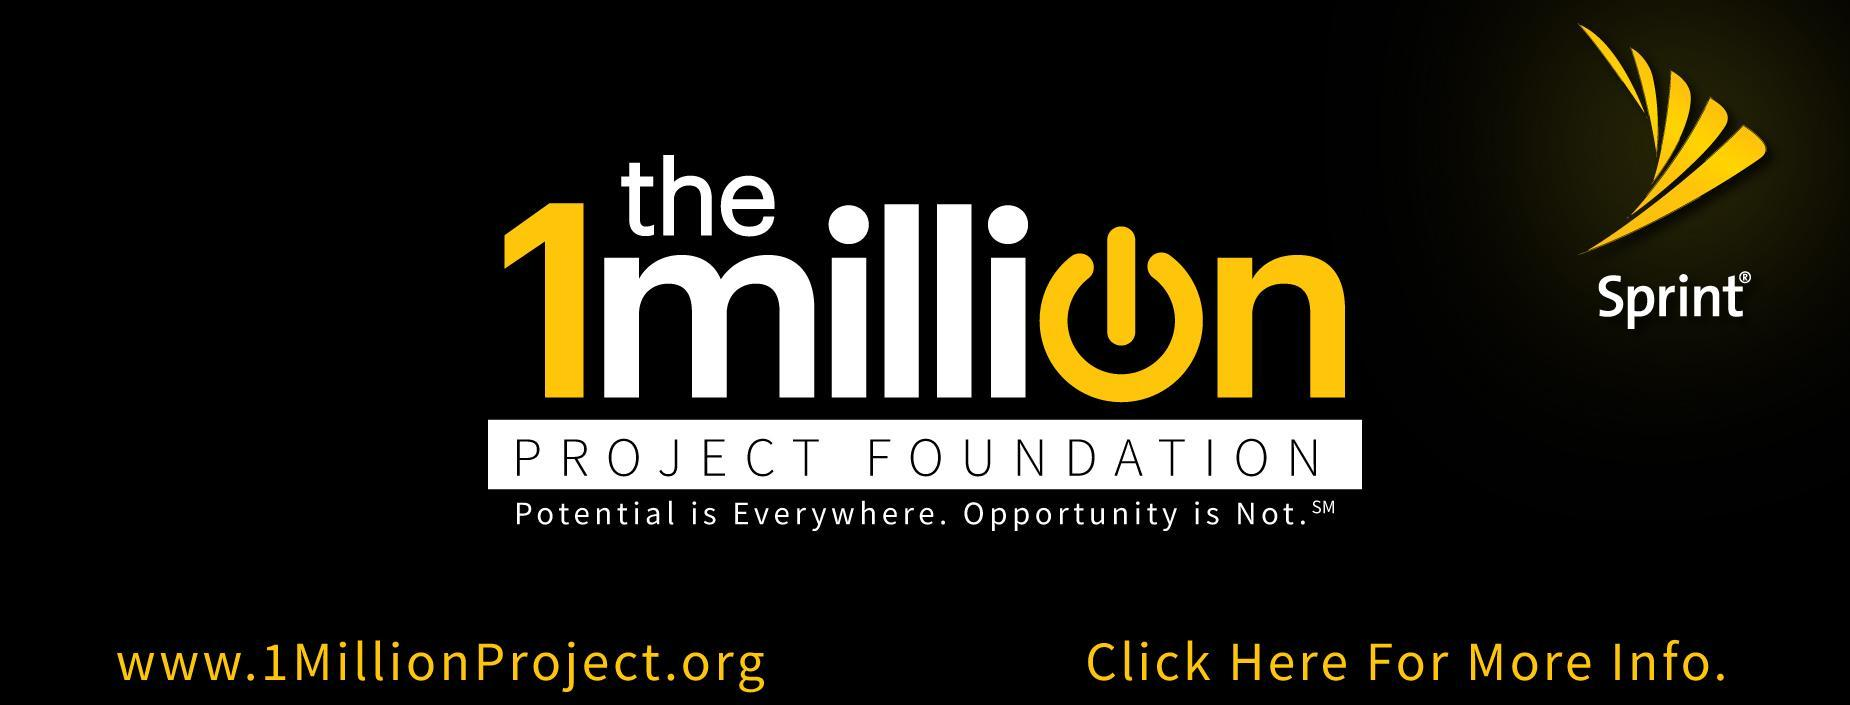 Sprint the 1Million Project Foundation